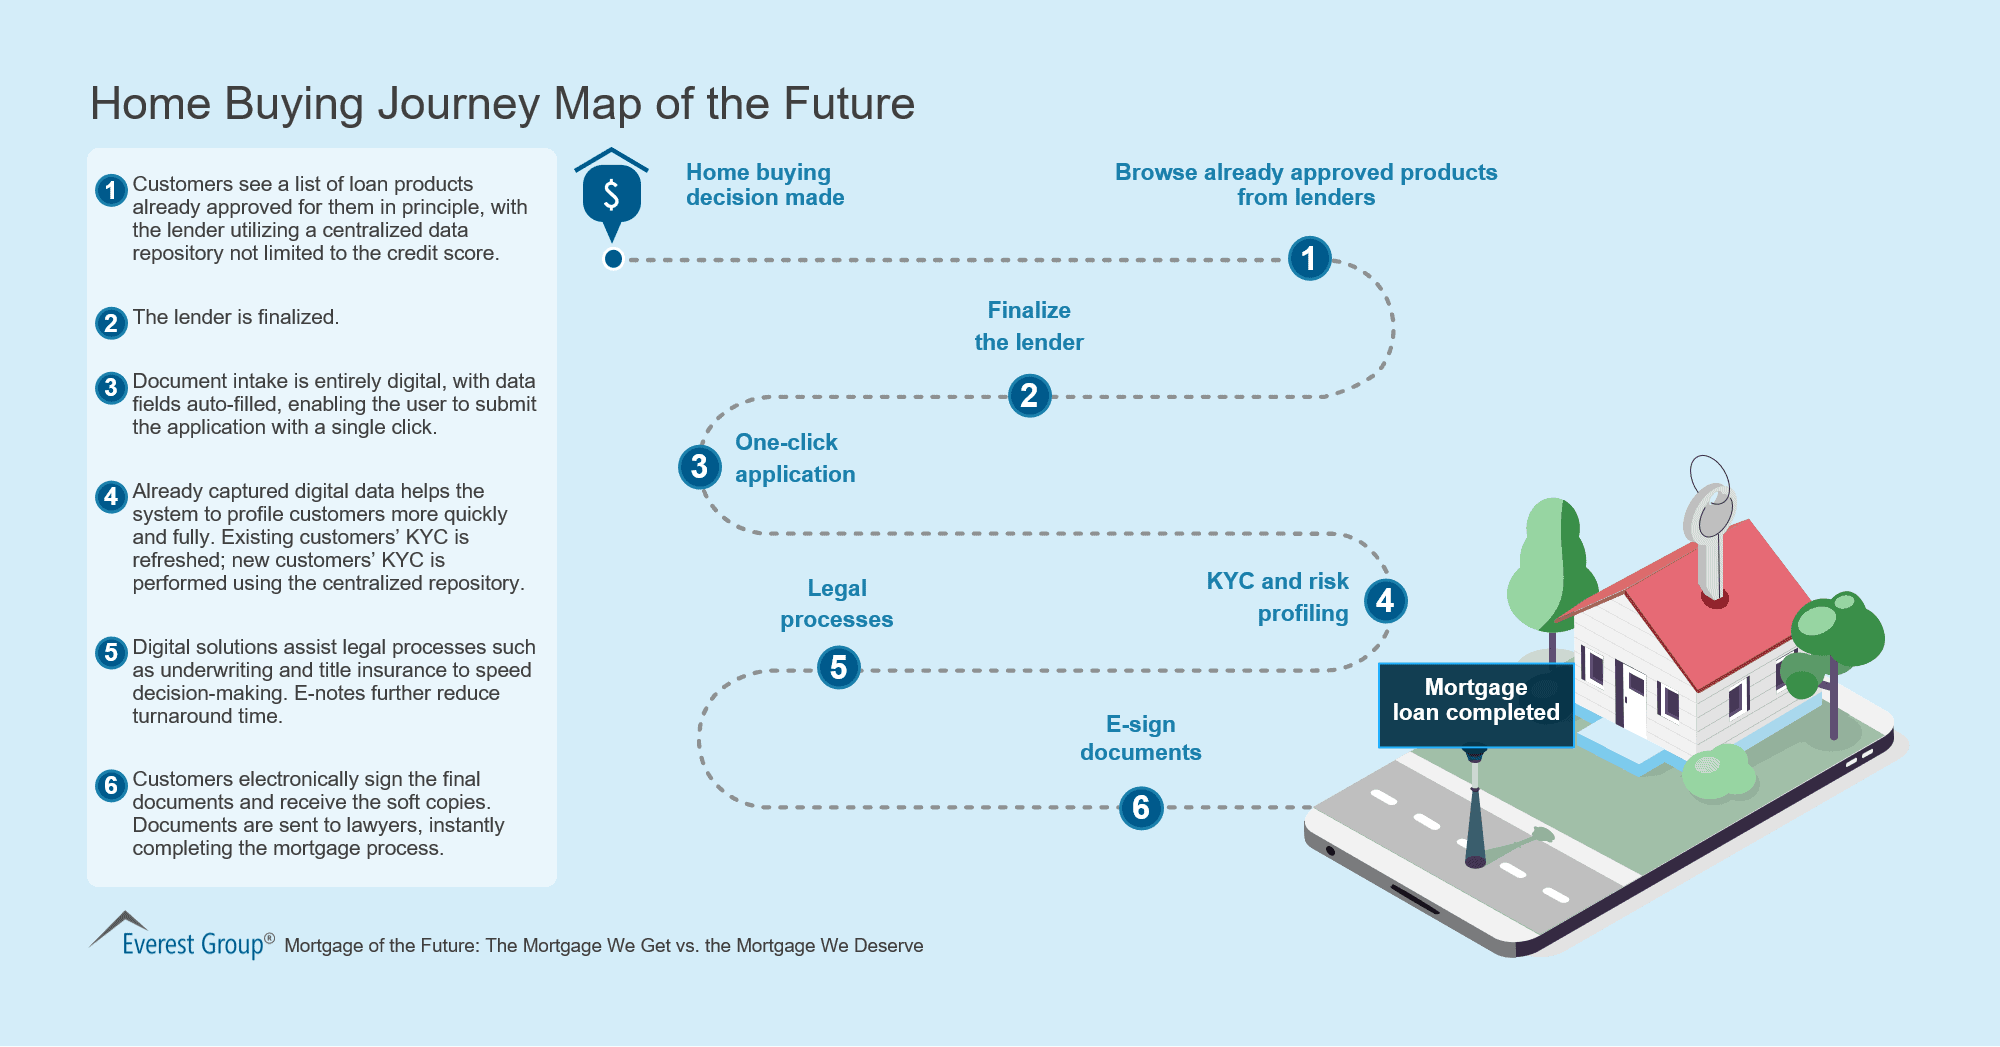 Home Buying Journey Map of the Future